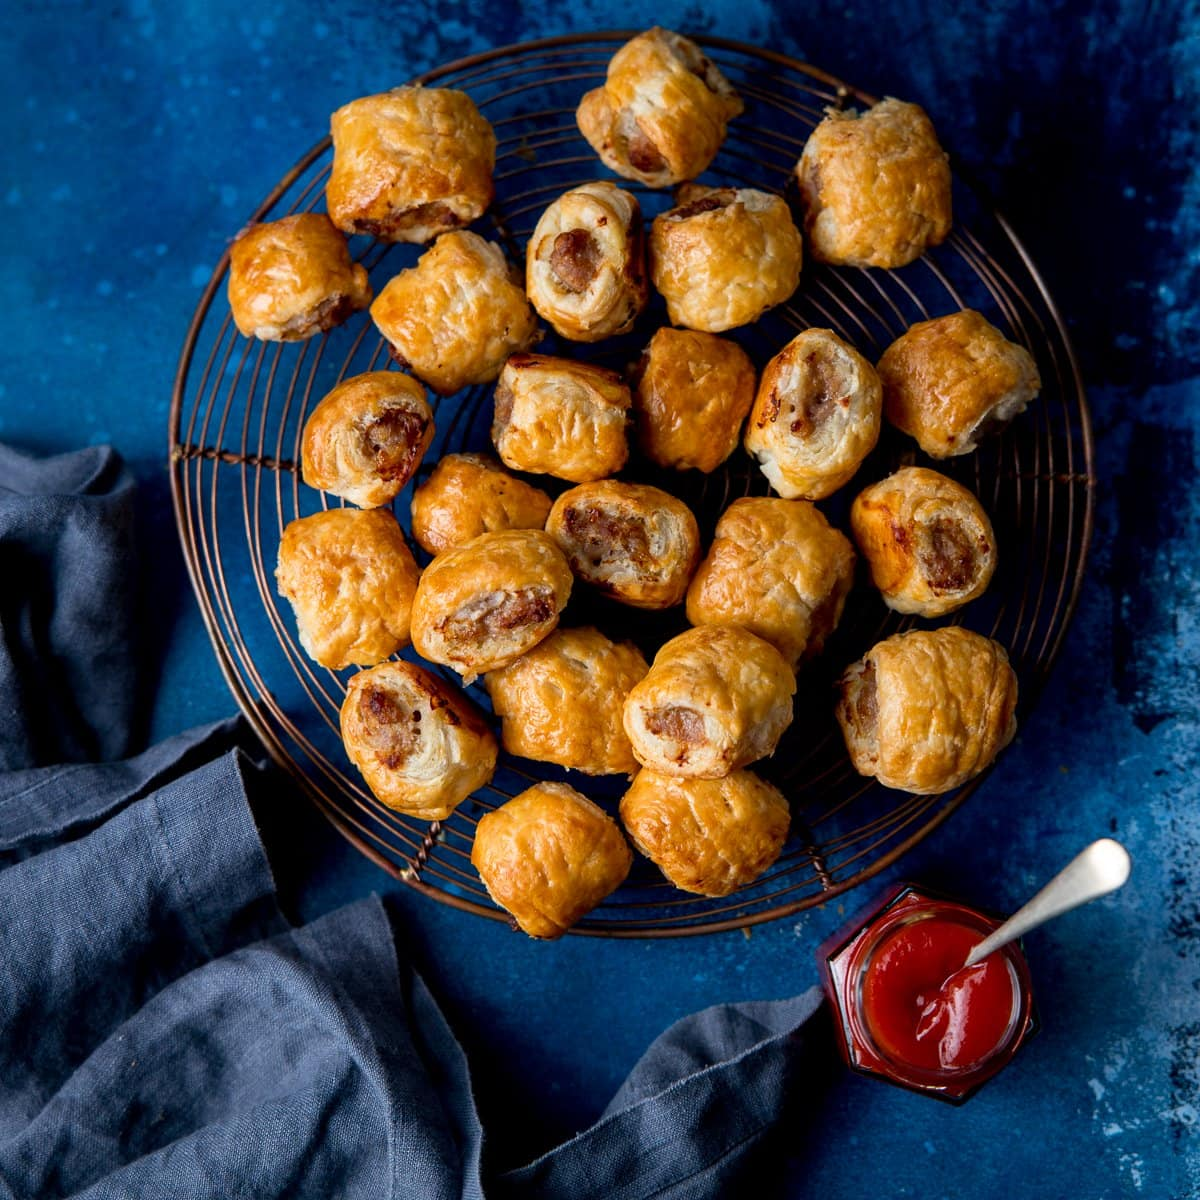 Square image of sausage rolls on a cooling rack on a dark blue background